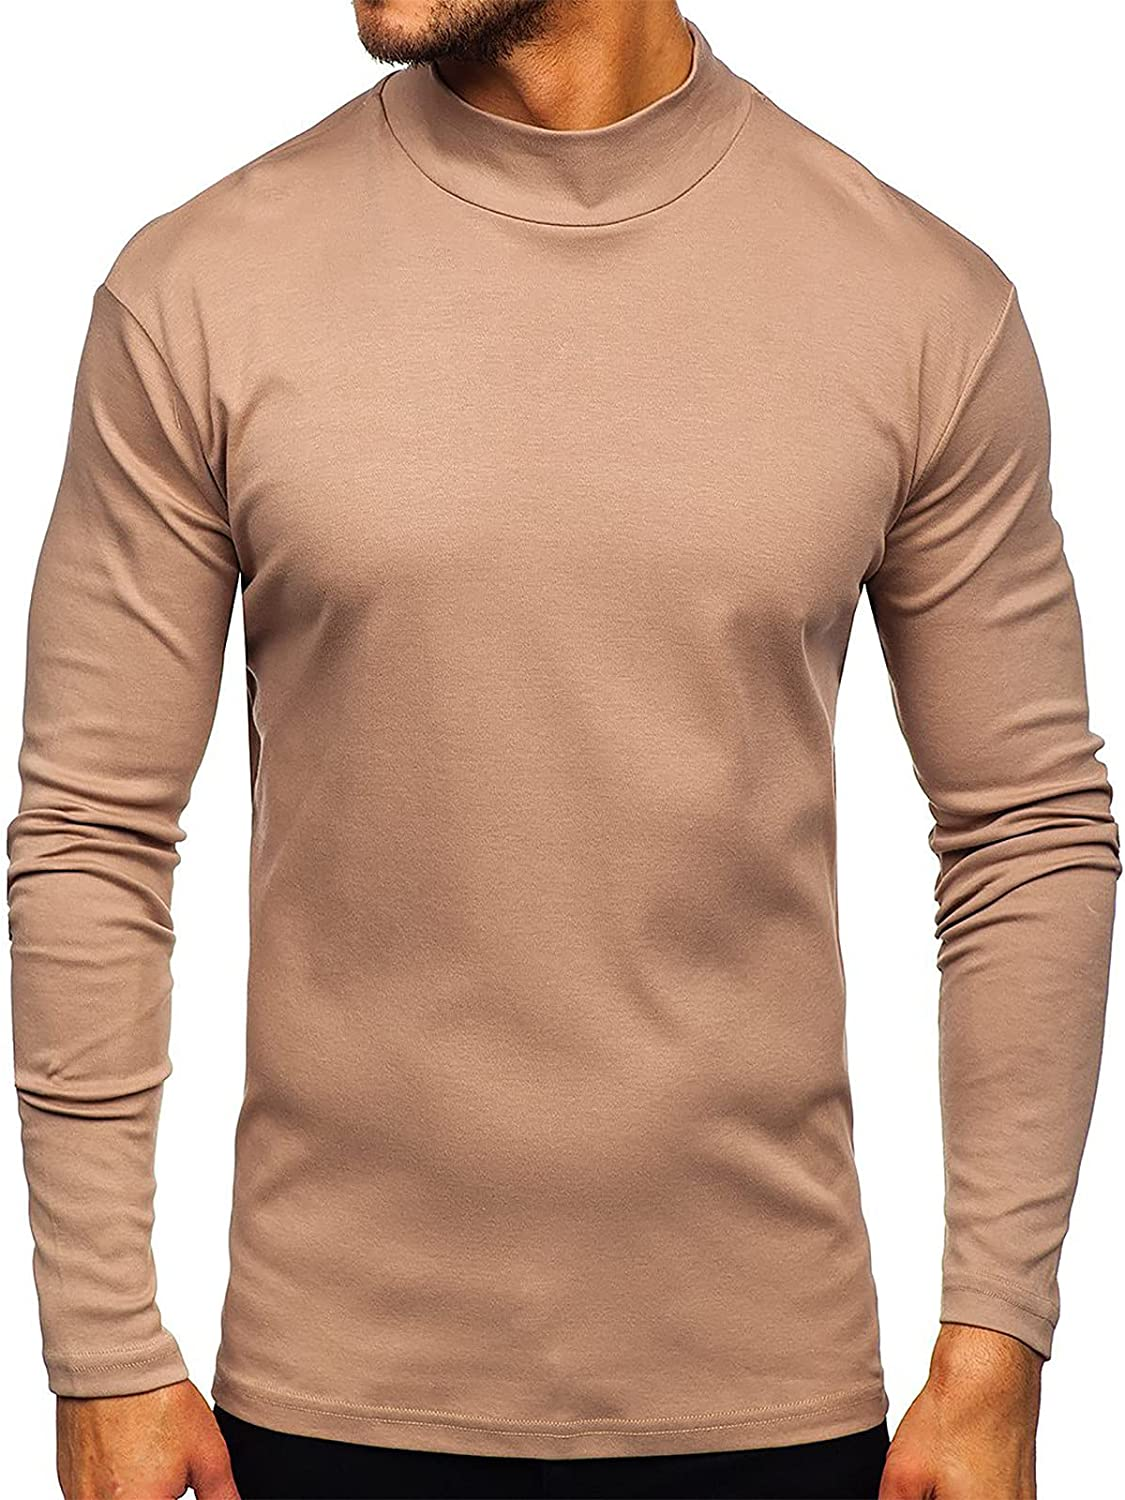 Men Crewneck T-Shirts, Long Sleeve Pullover Sporty Tops Casual Solid Cotton Premium Fitted Modern Basic Blouse